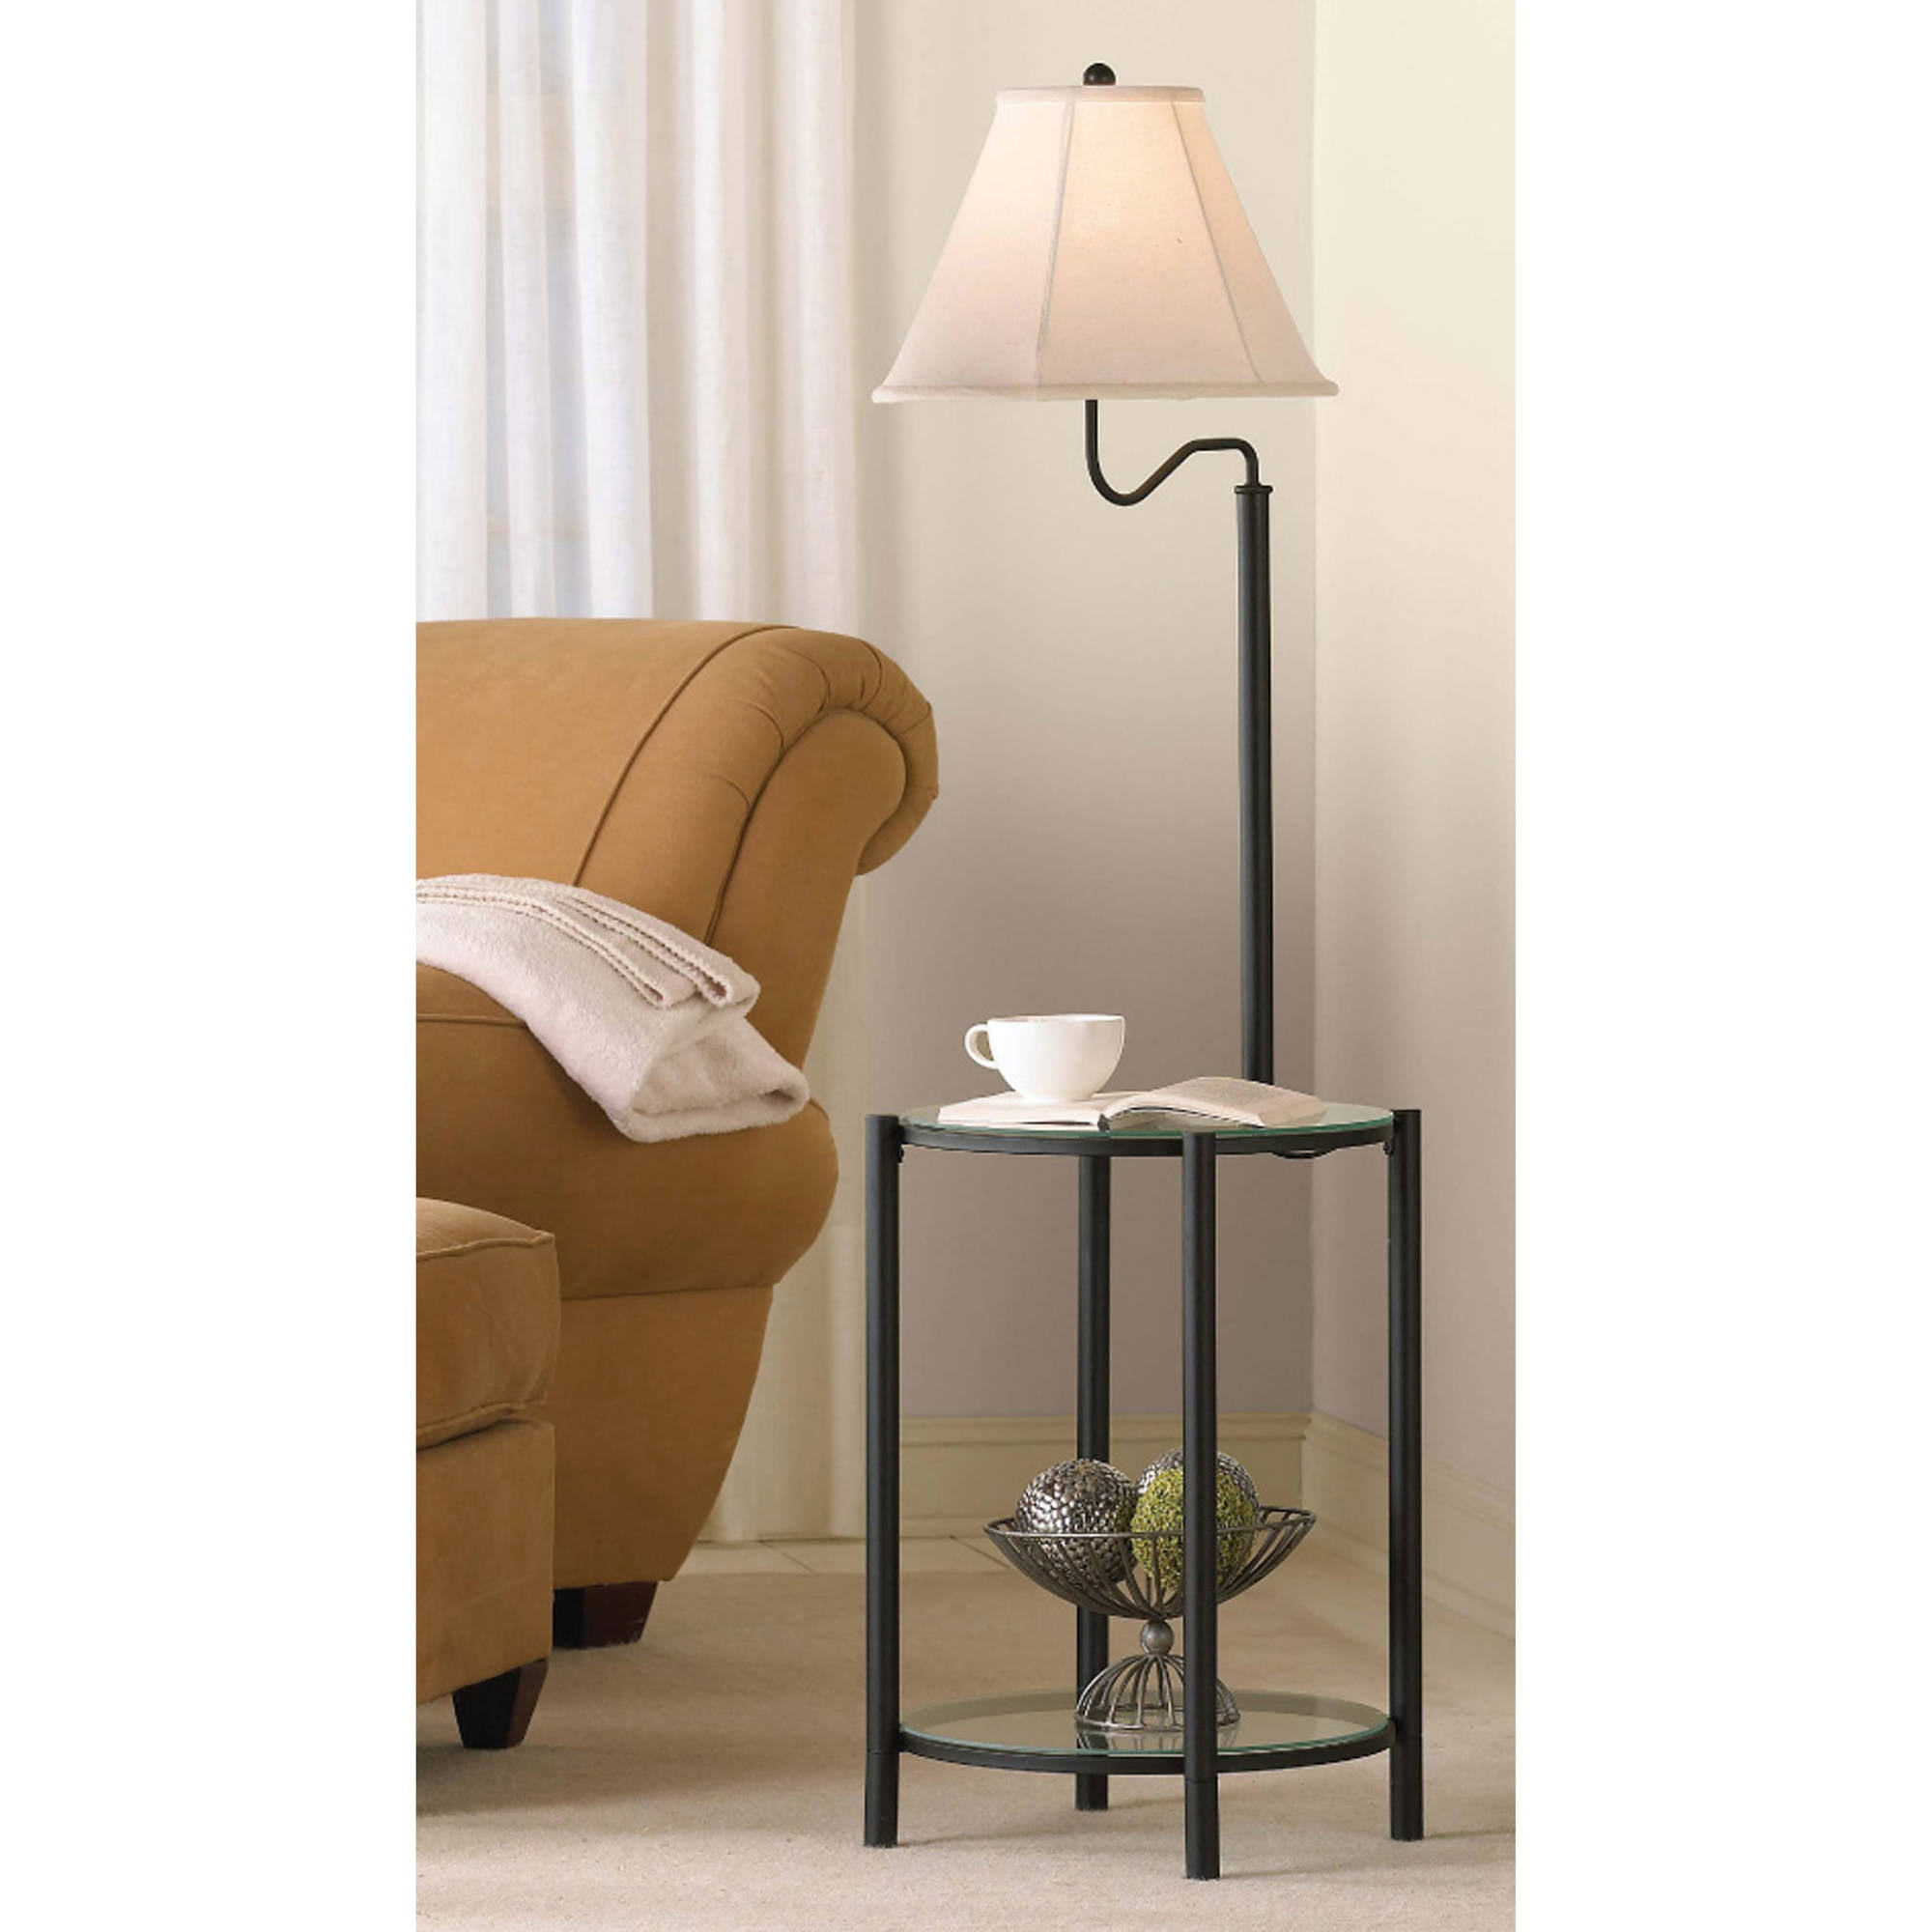 lamp floor buy table cheap online lots lamps canada s uk ebay walmart big